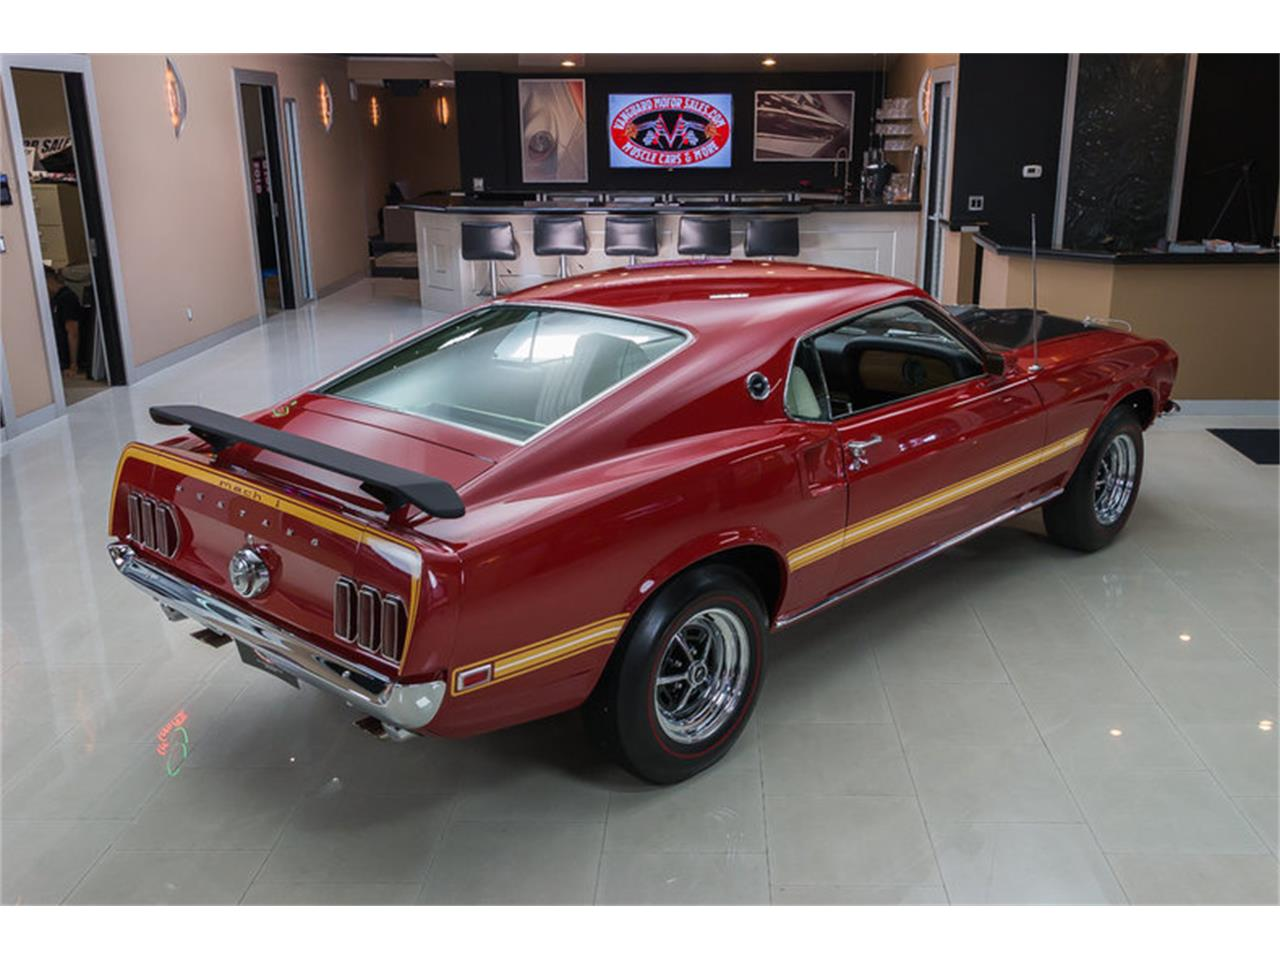 Large Picture of Classic '69 Ford Mustang Mach 1 S Code located in Michigan Offered by Vanguard Motor Sales - IS3G